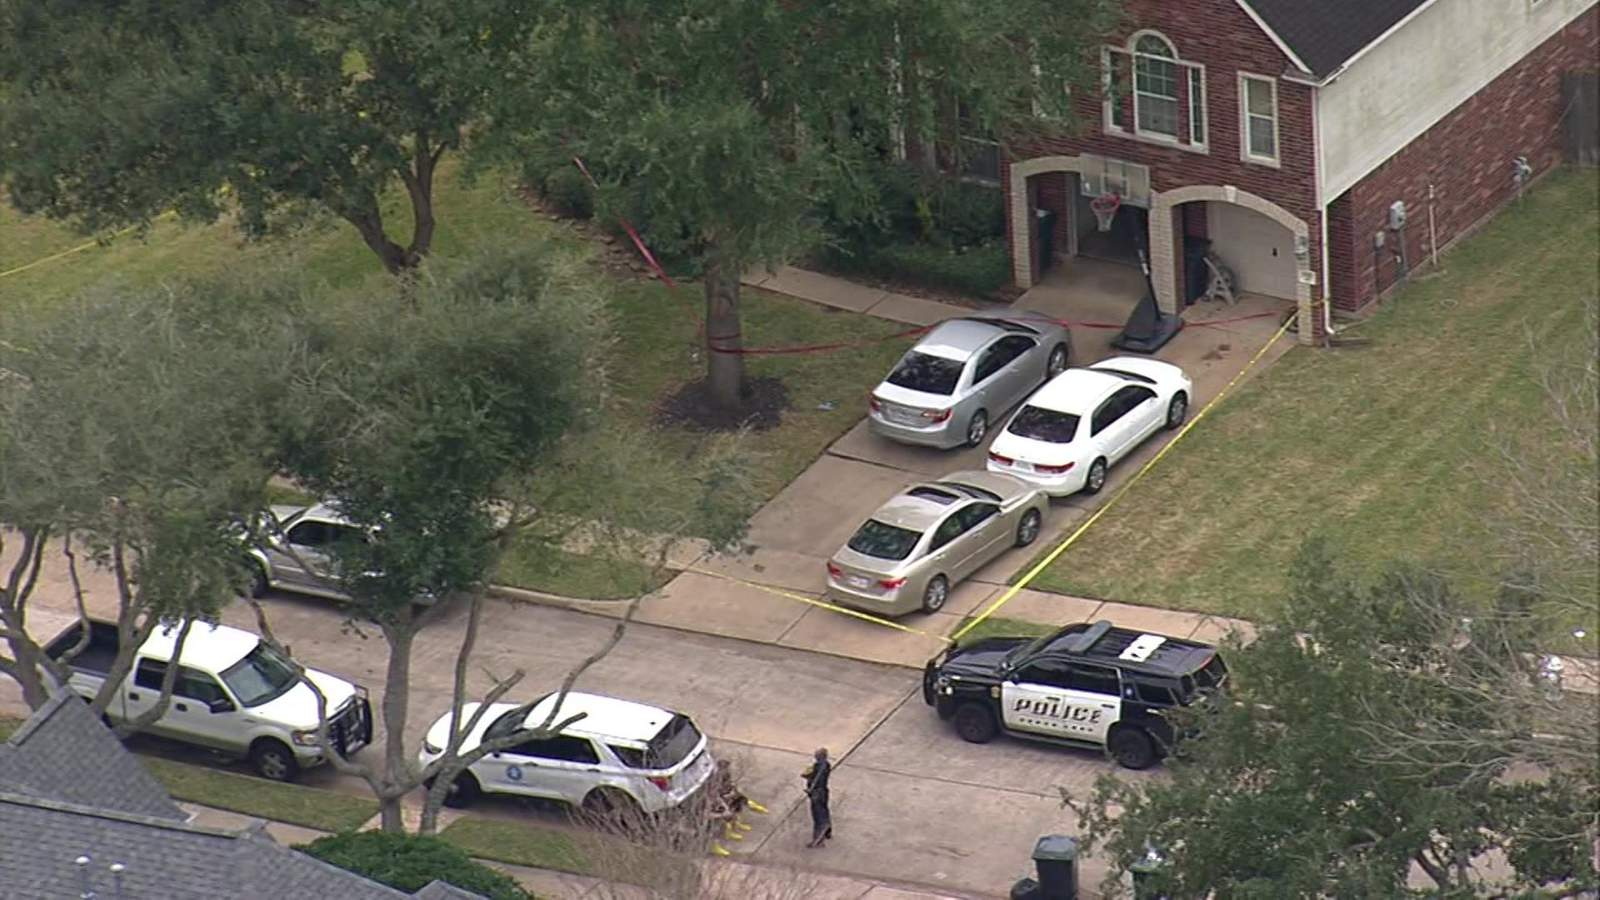 Investigation underway after couple found dead in Sugar Land home, police say - KPRC Click2Houston